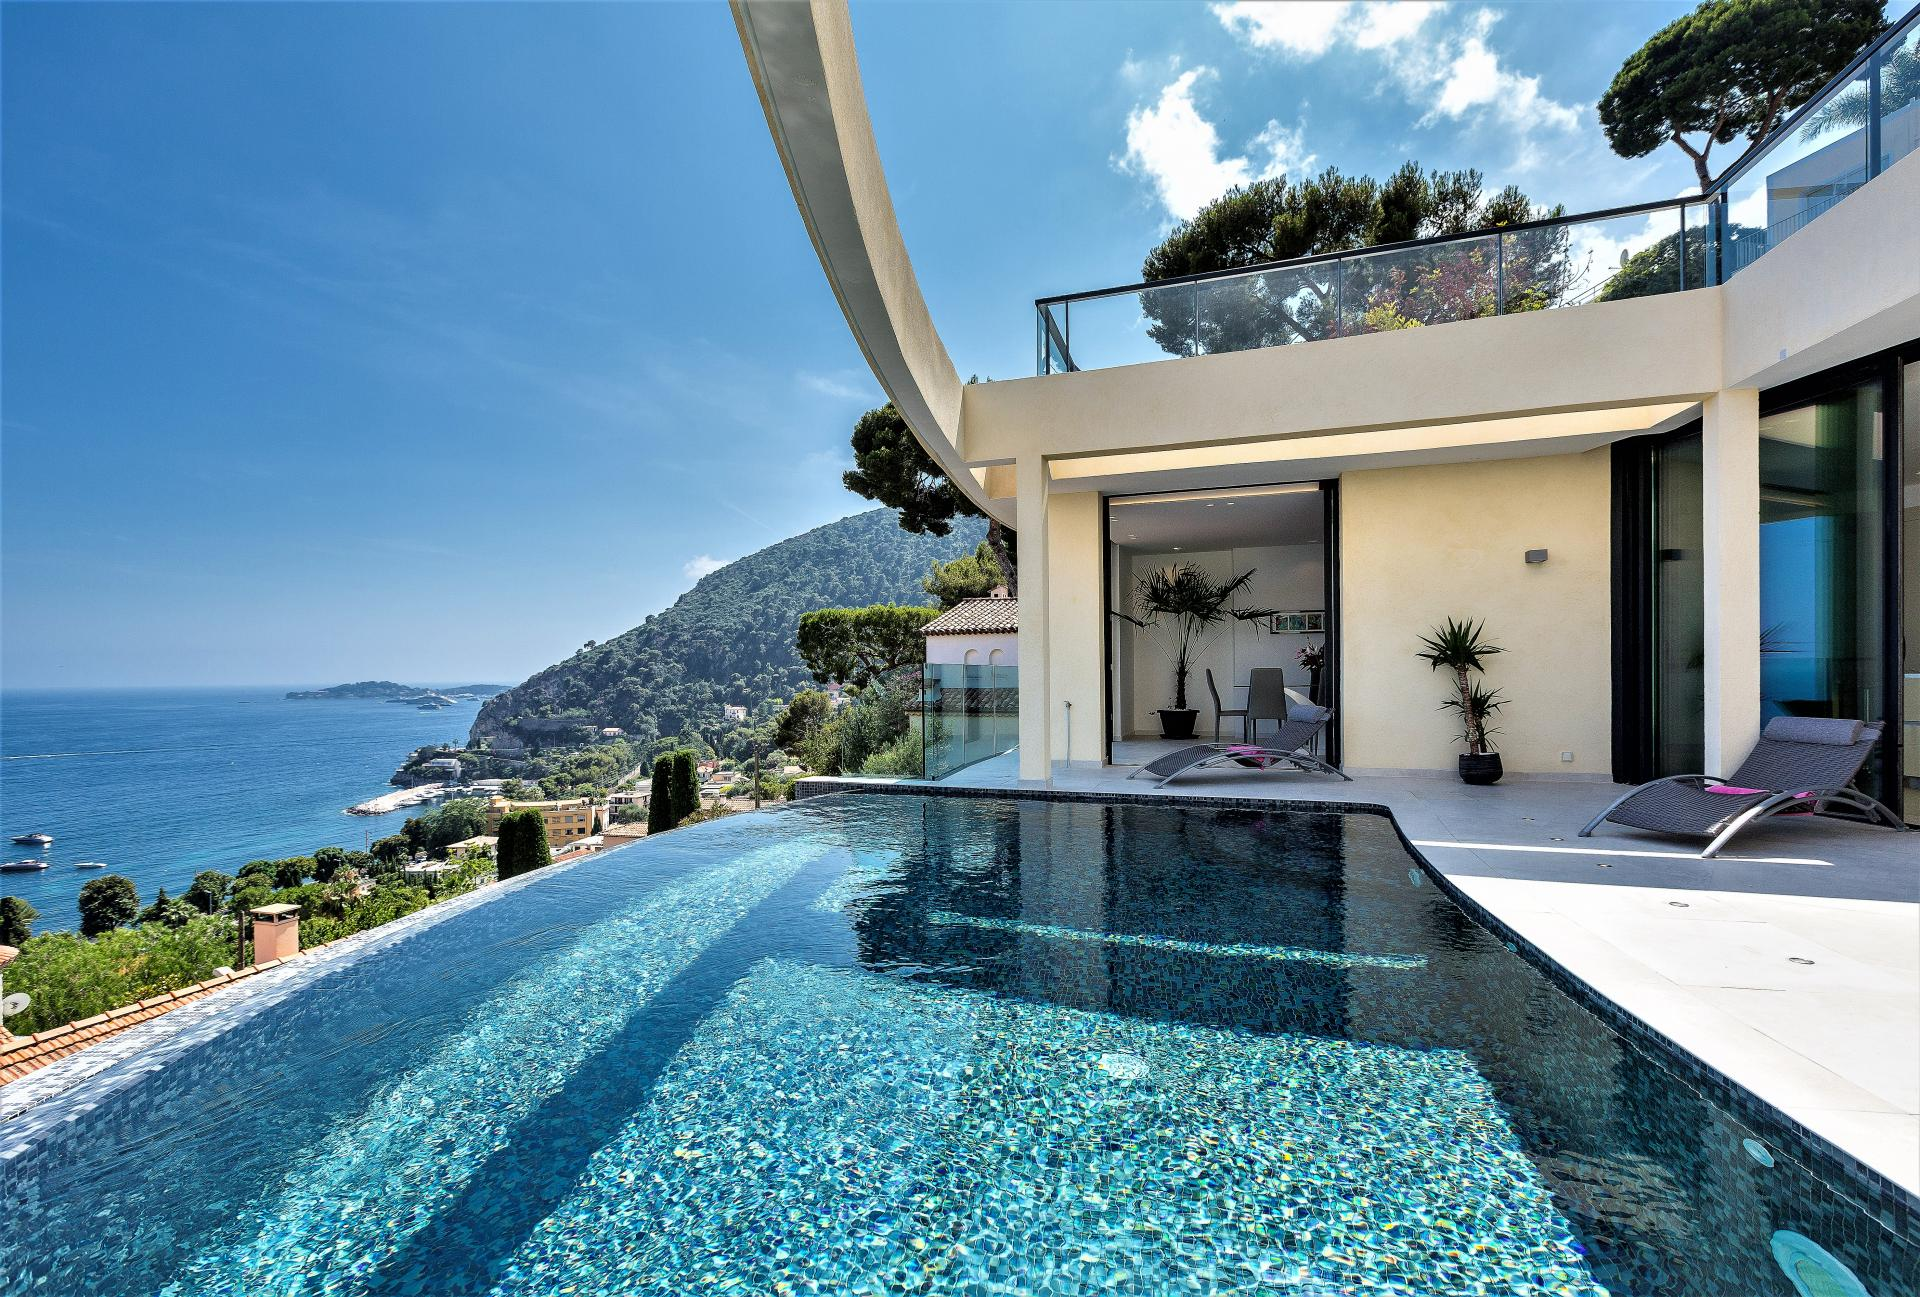 LUXURY VILLA HOLIDAY RENTAL WITH SEA VIEWS IN EZE IN THE COTE D'AZUR SOUTH